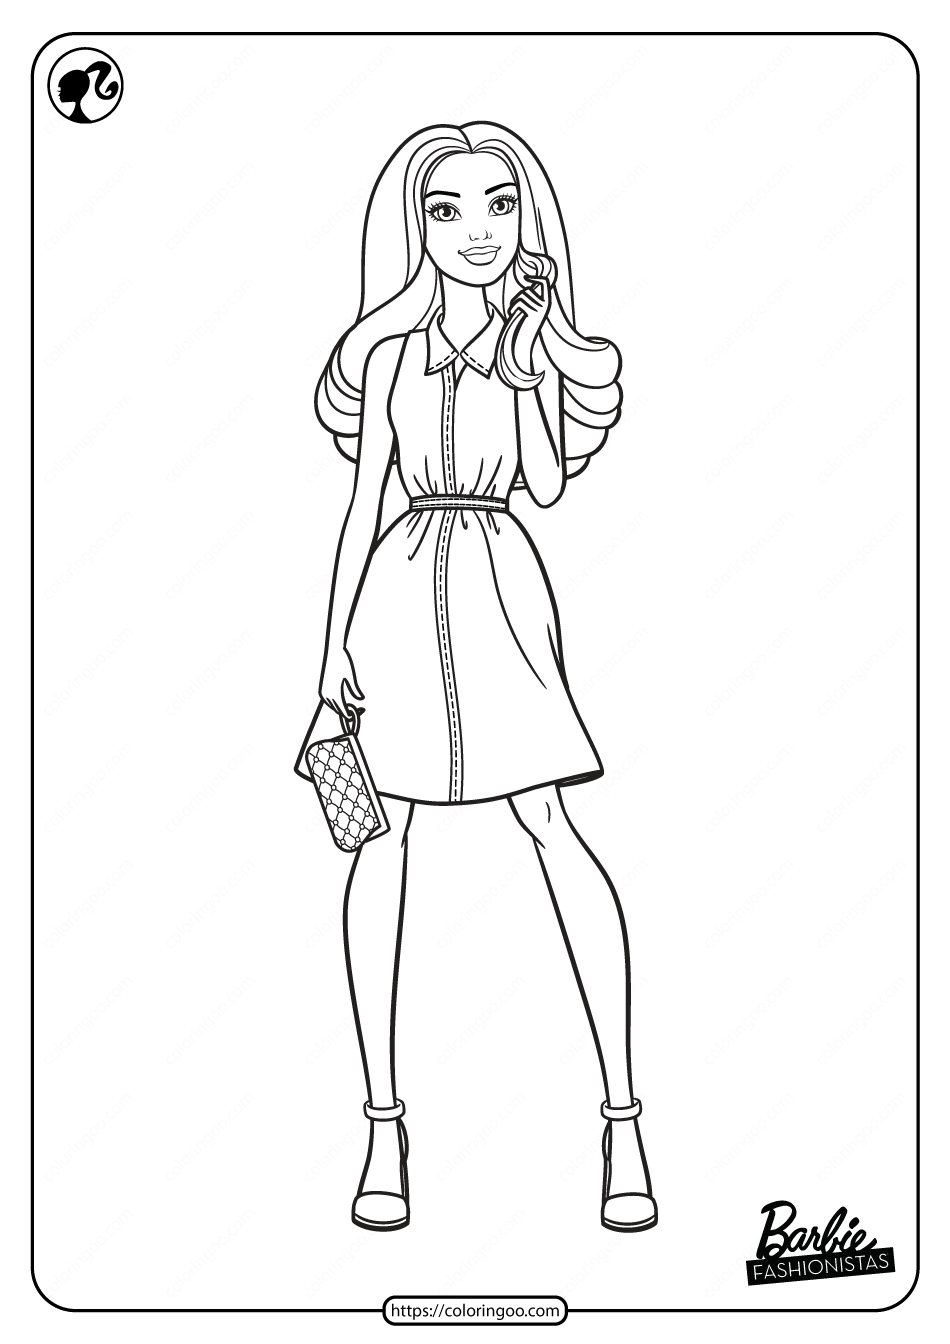 Printable Barbie Fashionistas Pdf Coloring Pages 04